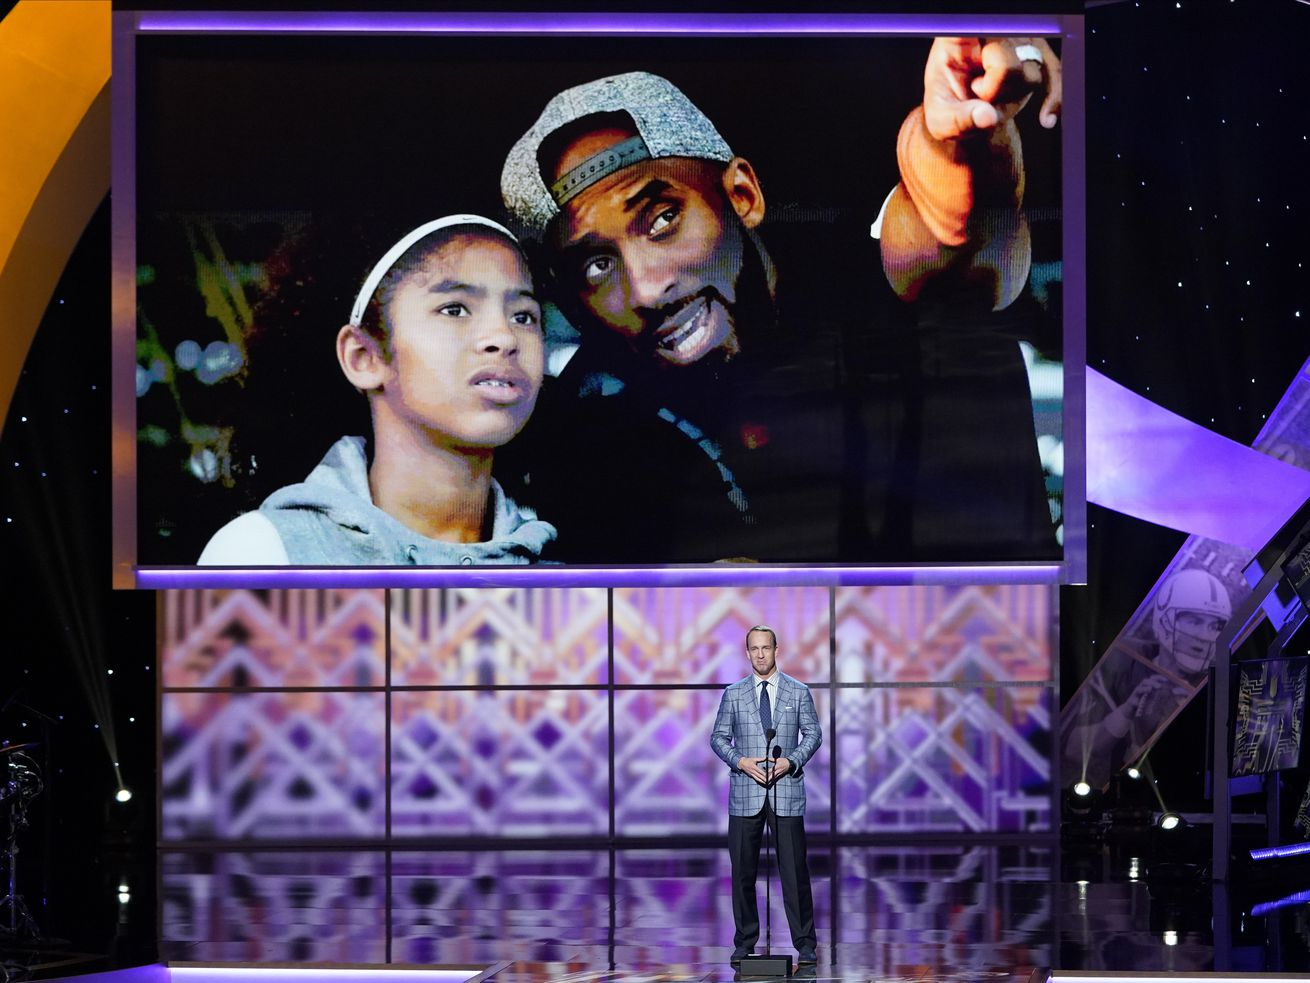 The city of Los Angeles will host a public memorial service for Kobe Bryant, his daughter Gianna and the seven others who died in a helicopter crash on Jan. 26 in Calabasas. In this photo, former NFL quarterback Peyton Manning pays tribute to Kobe Bryant and his daughter Gianna at the NFL Honors football award show Saturday, Feb. 1, 2020, in Miami. (AP Photo/David J. Phillip)